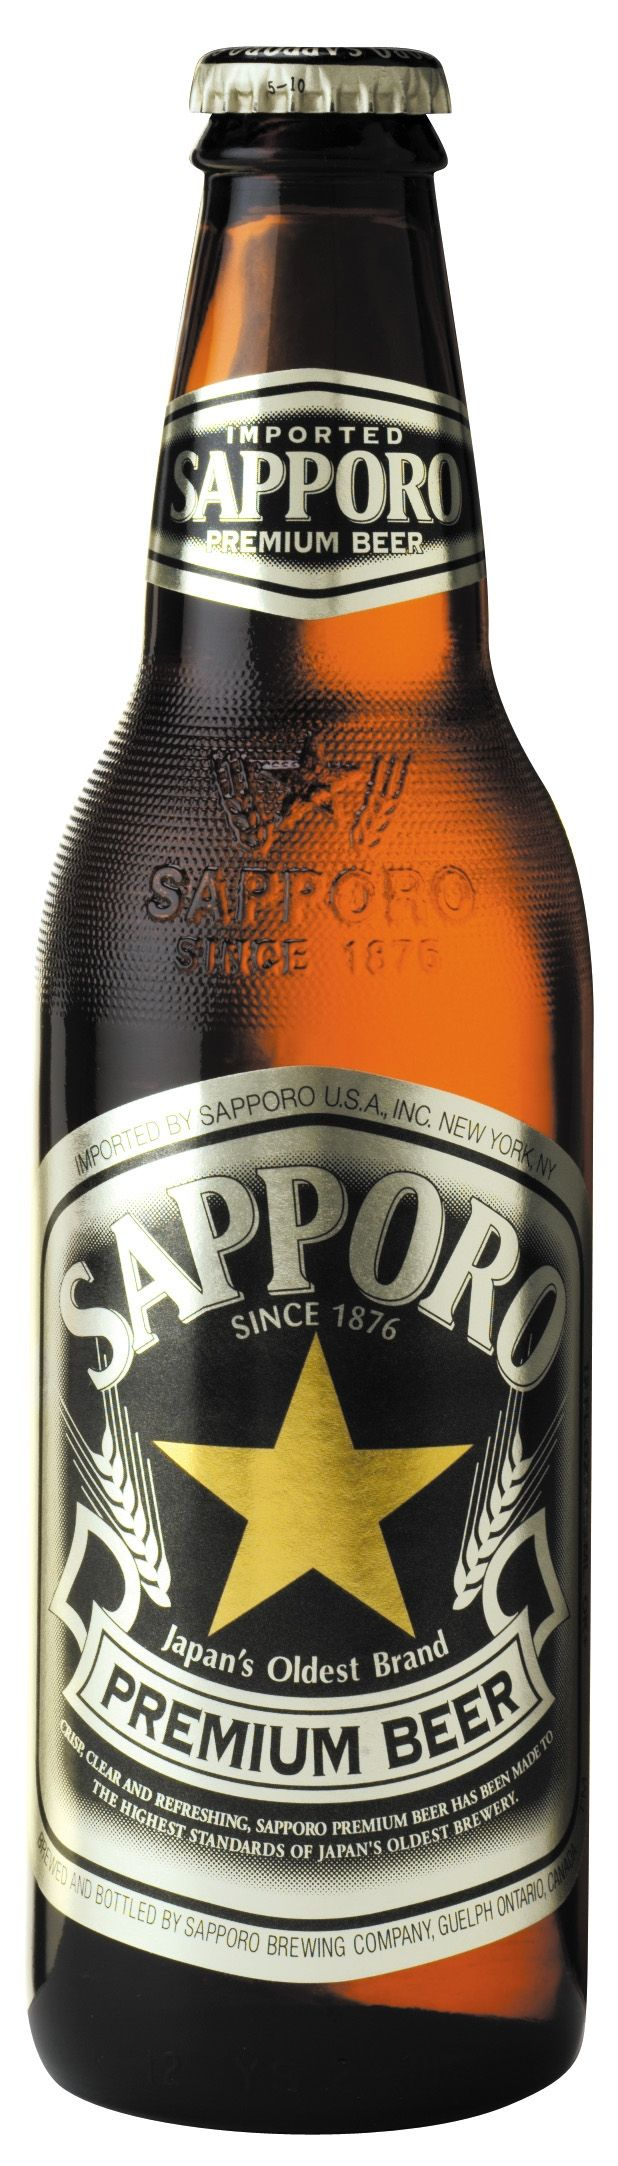 New addition to LnL's good ol'mighty bar fridge...Sapporo Beer 685ml, limited stock!